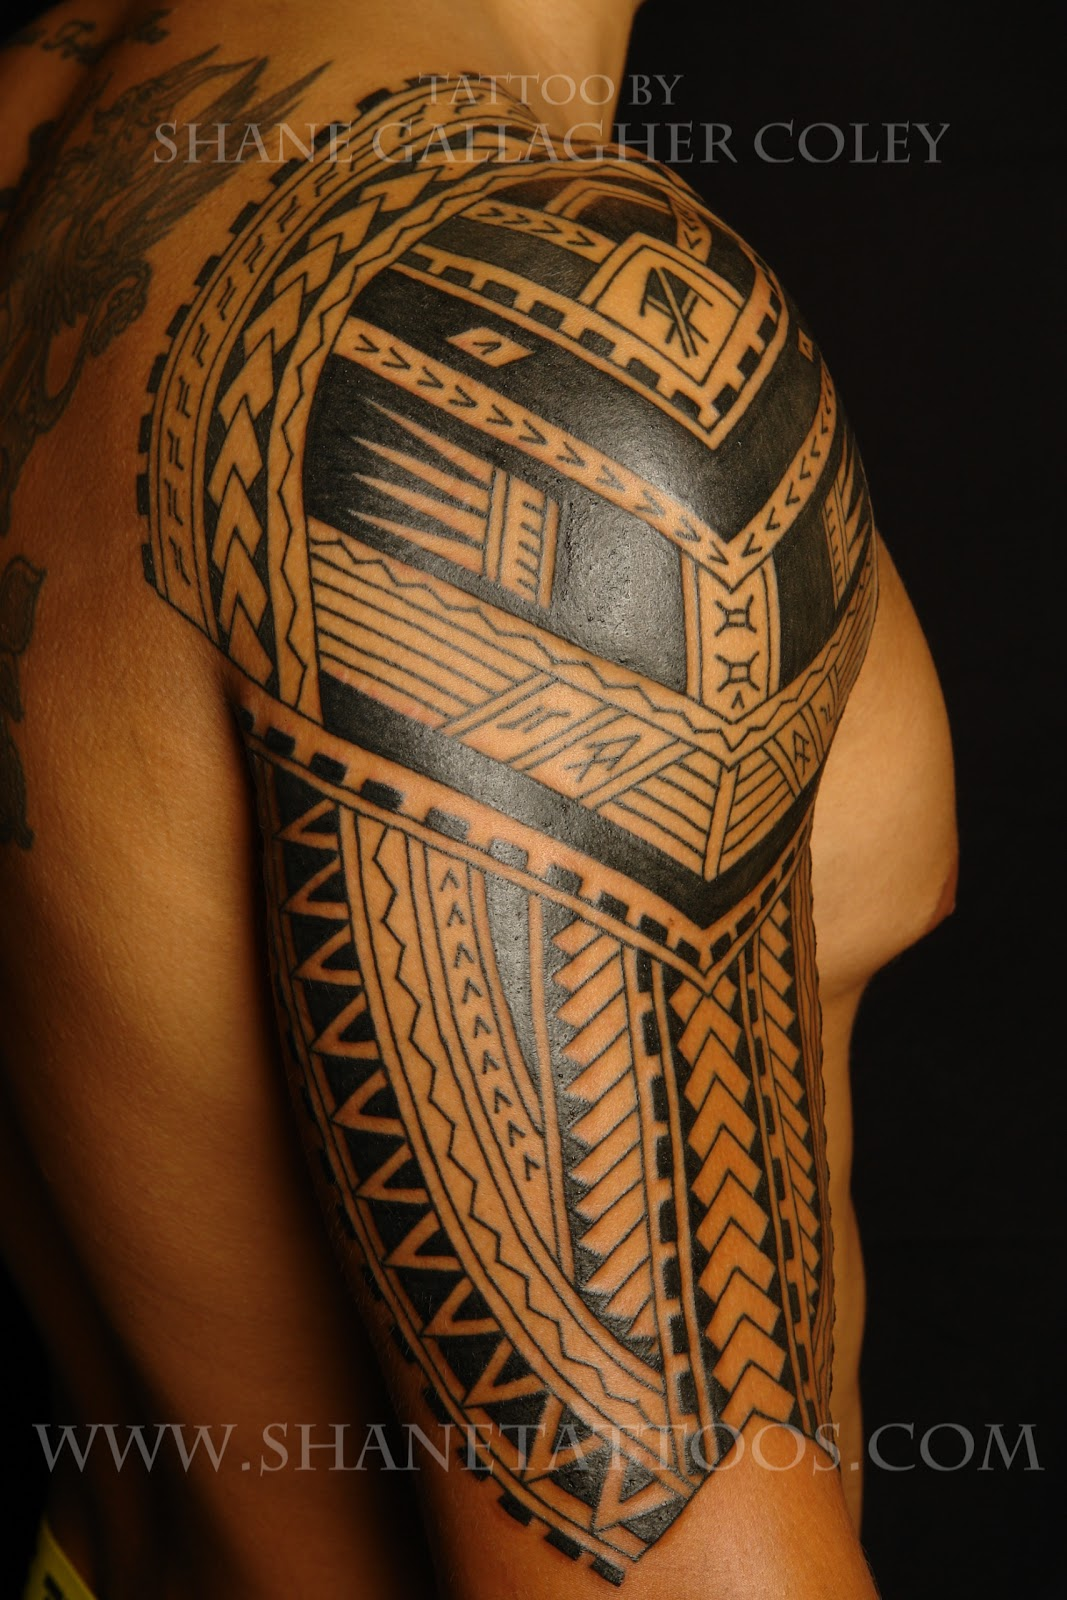 shane tattoos polynesian sleeve in progress